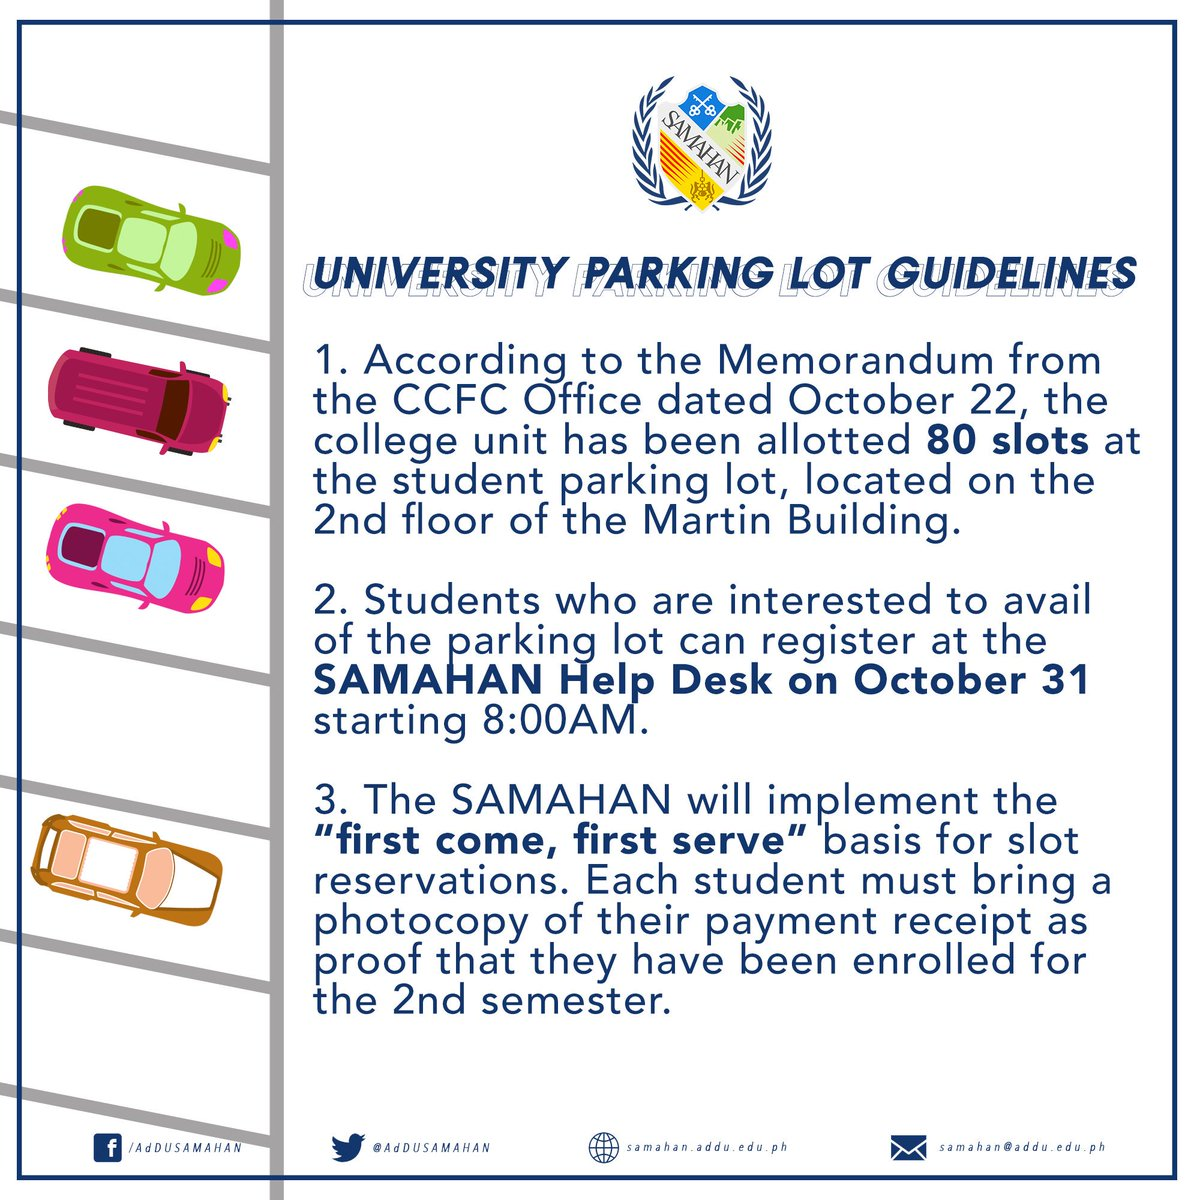 ATTN | University Parking Lot Guidelines for Undergraduate Students